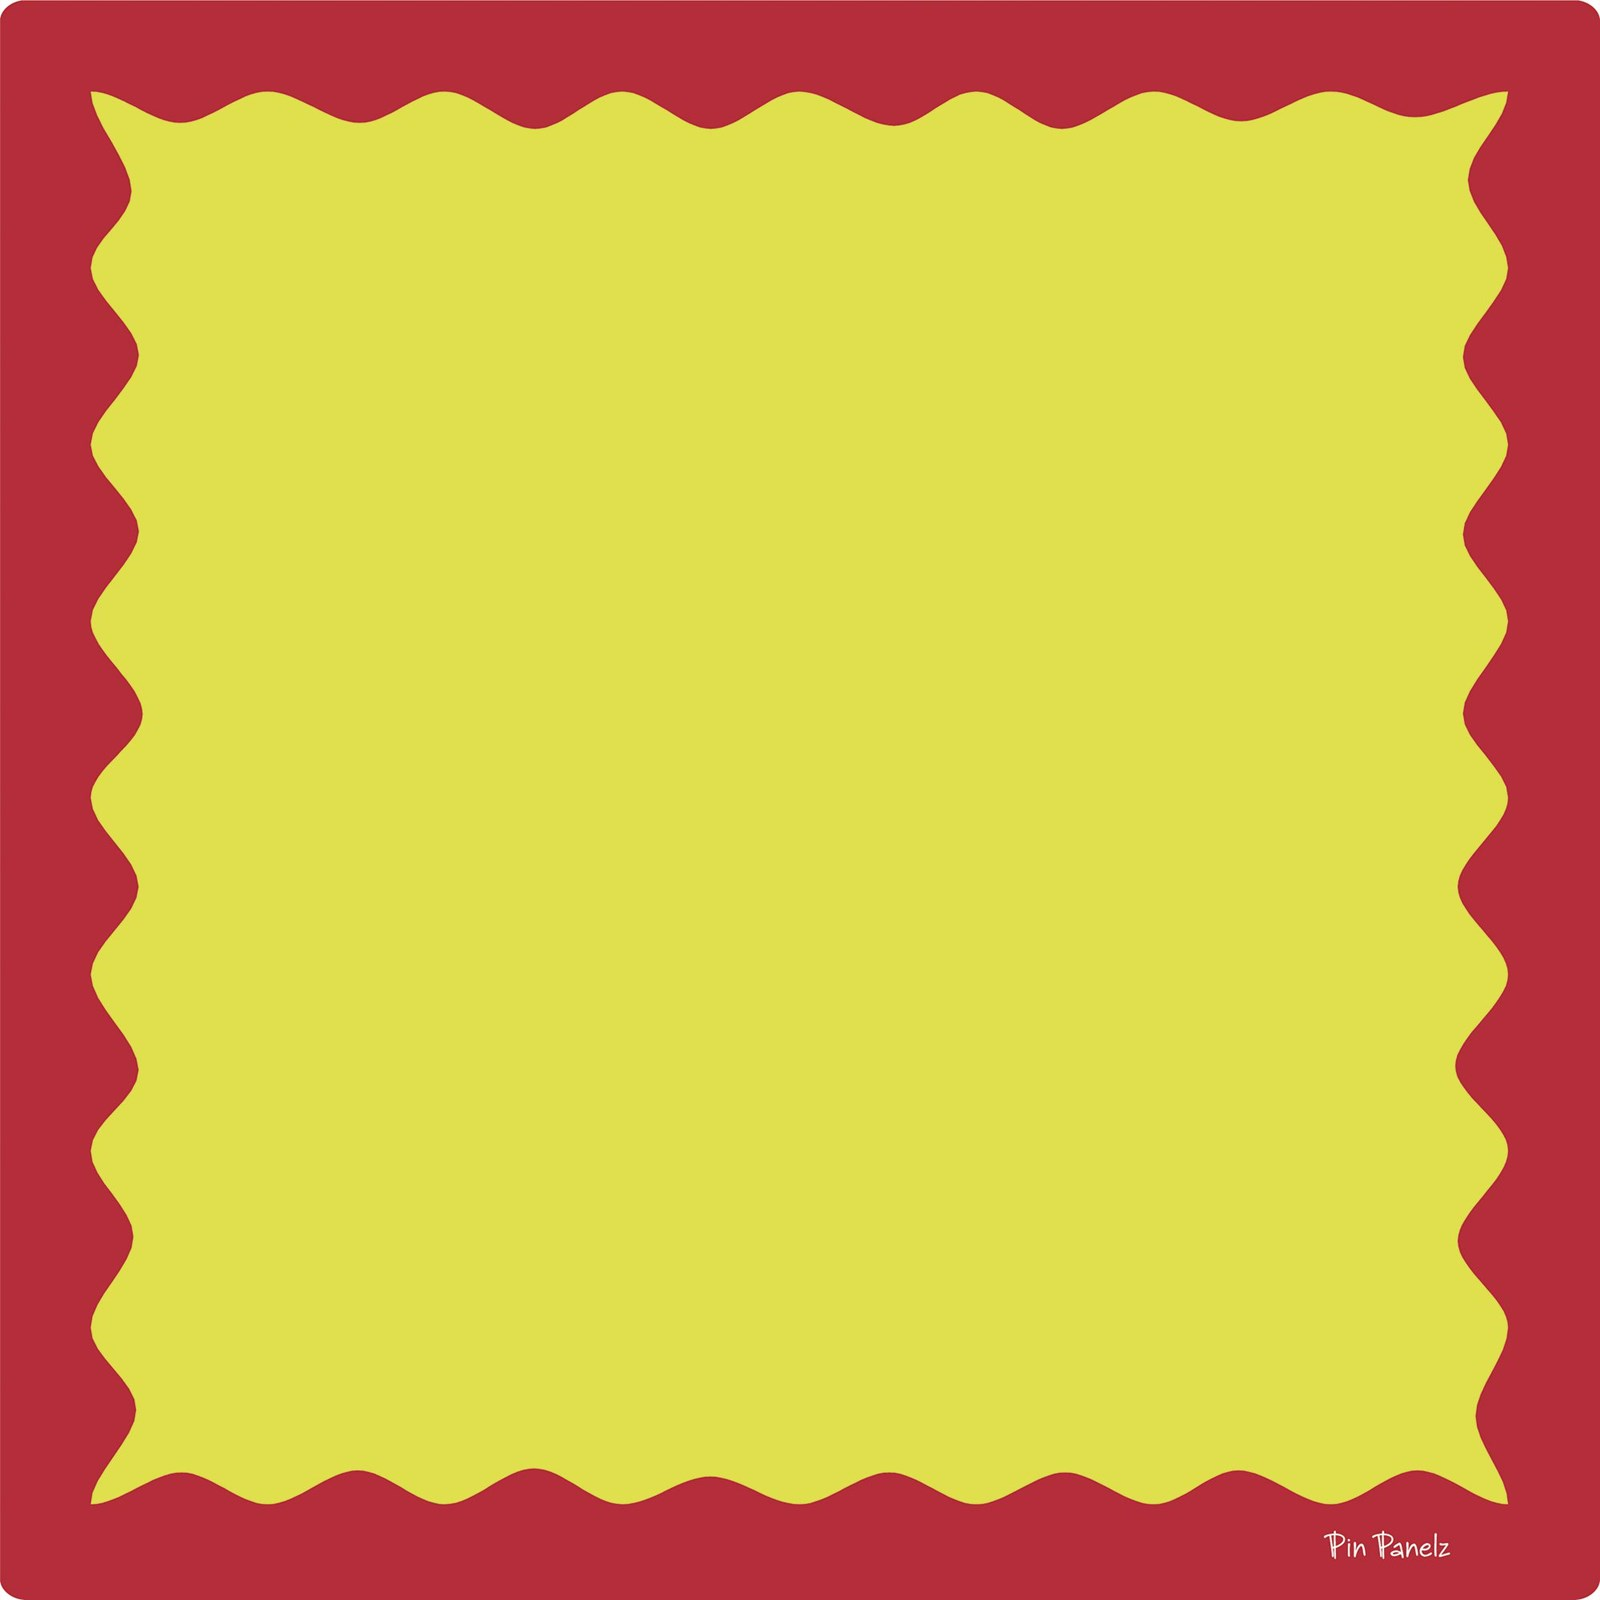 Funky Pin Panelz Red/Yellow - W1200 x H1200mm